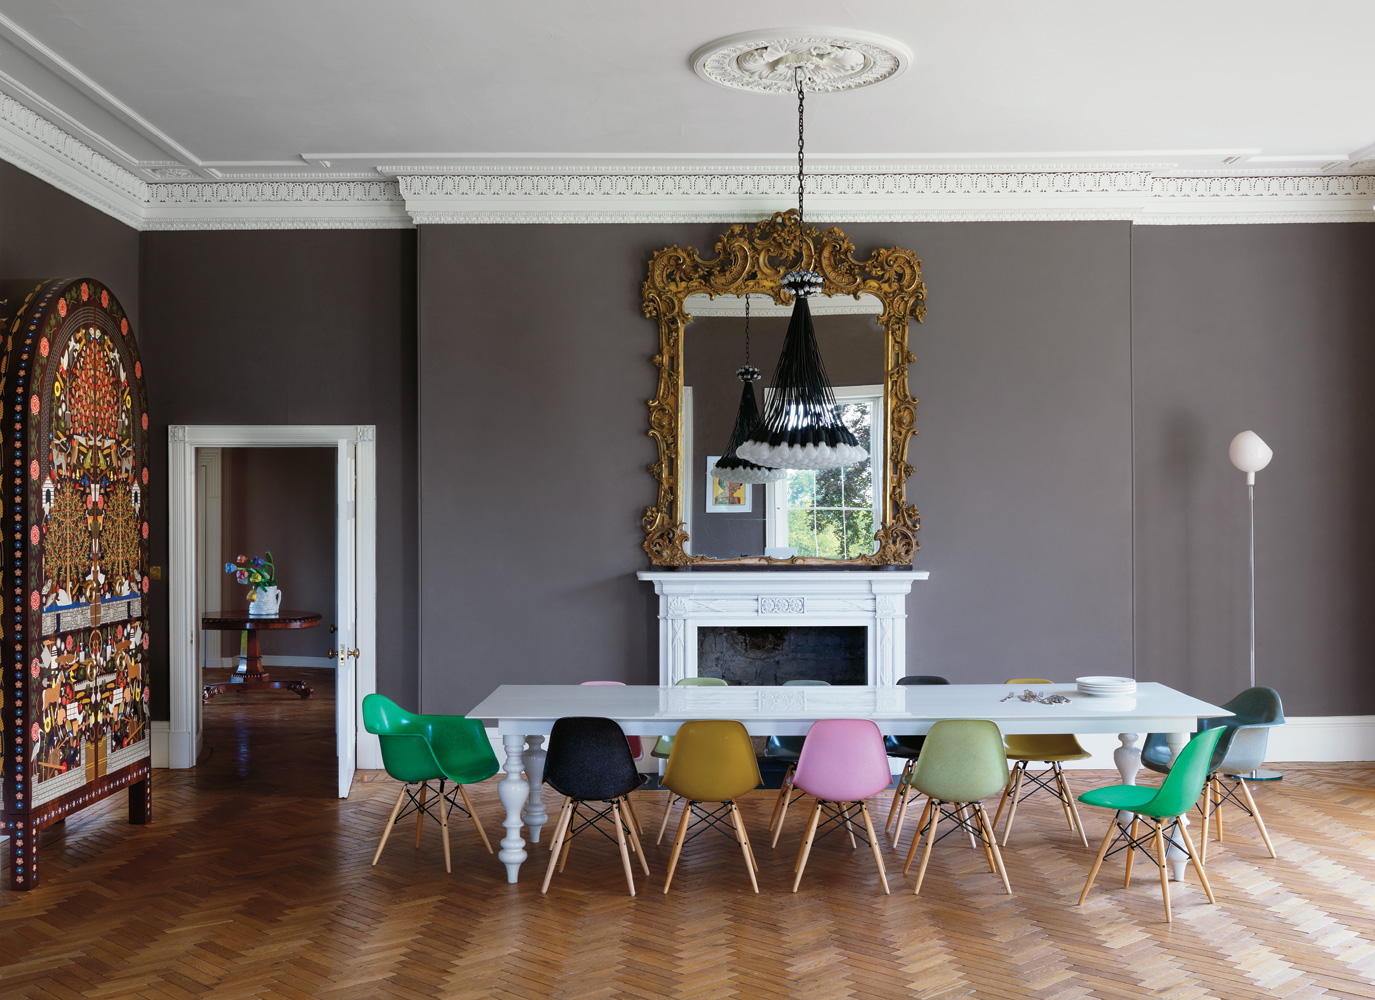 Awesome How To Follow Design Trends While Keeping Your Home Decor Timeless